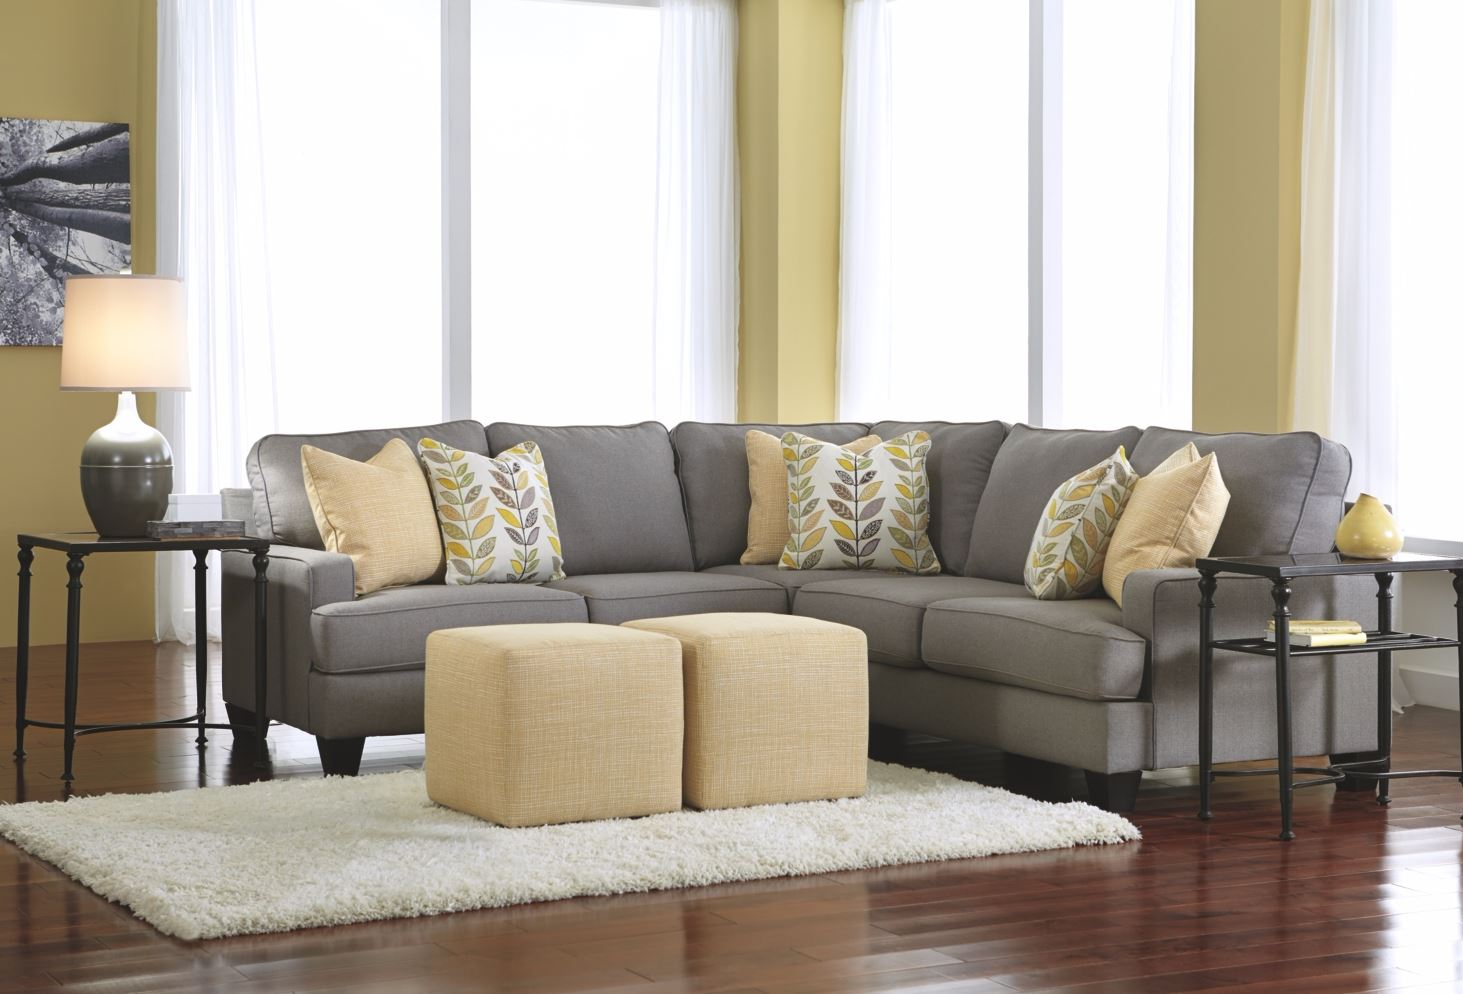 5 Tips For Getting The Sectional Of Your Dreams